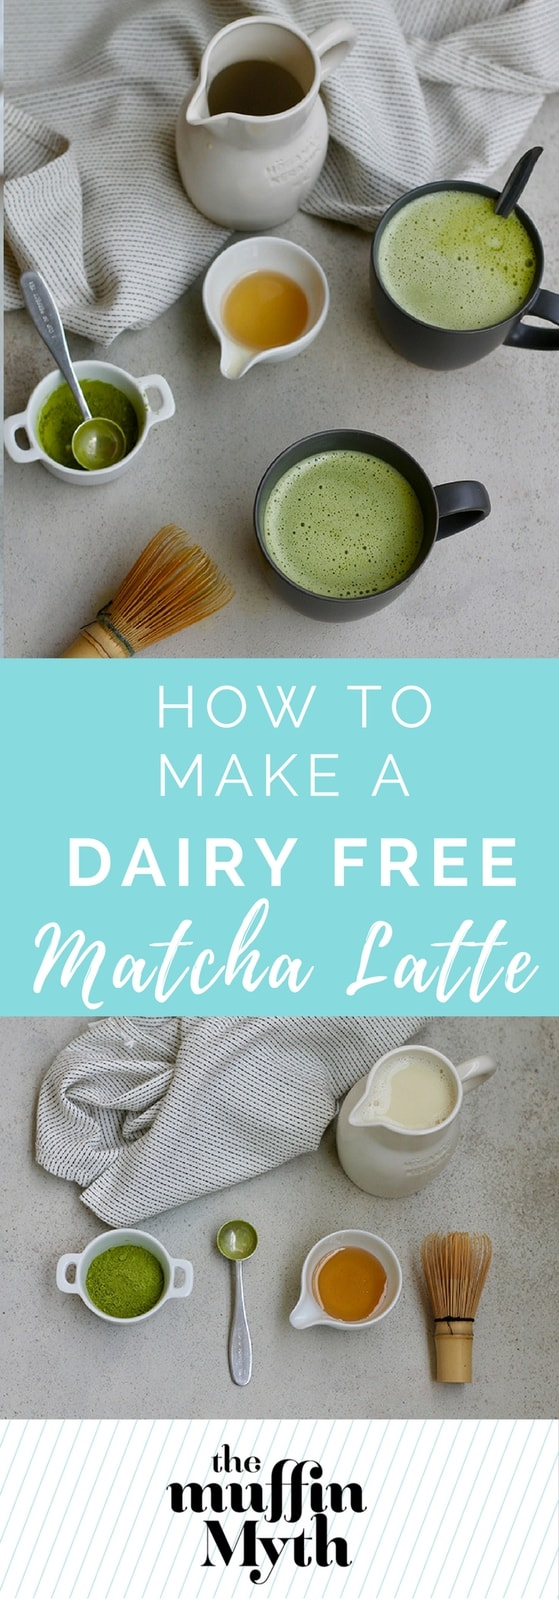 how to make hot matcha latte at home